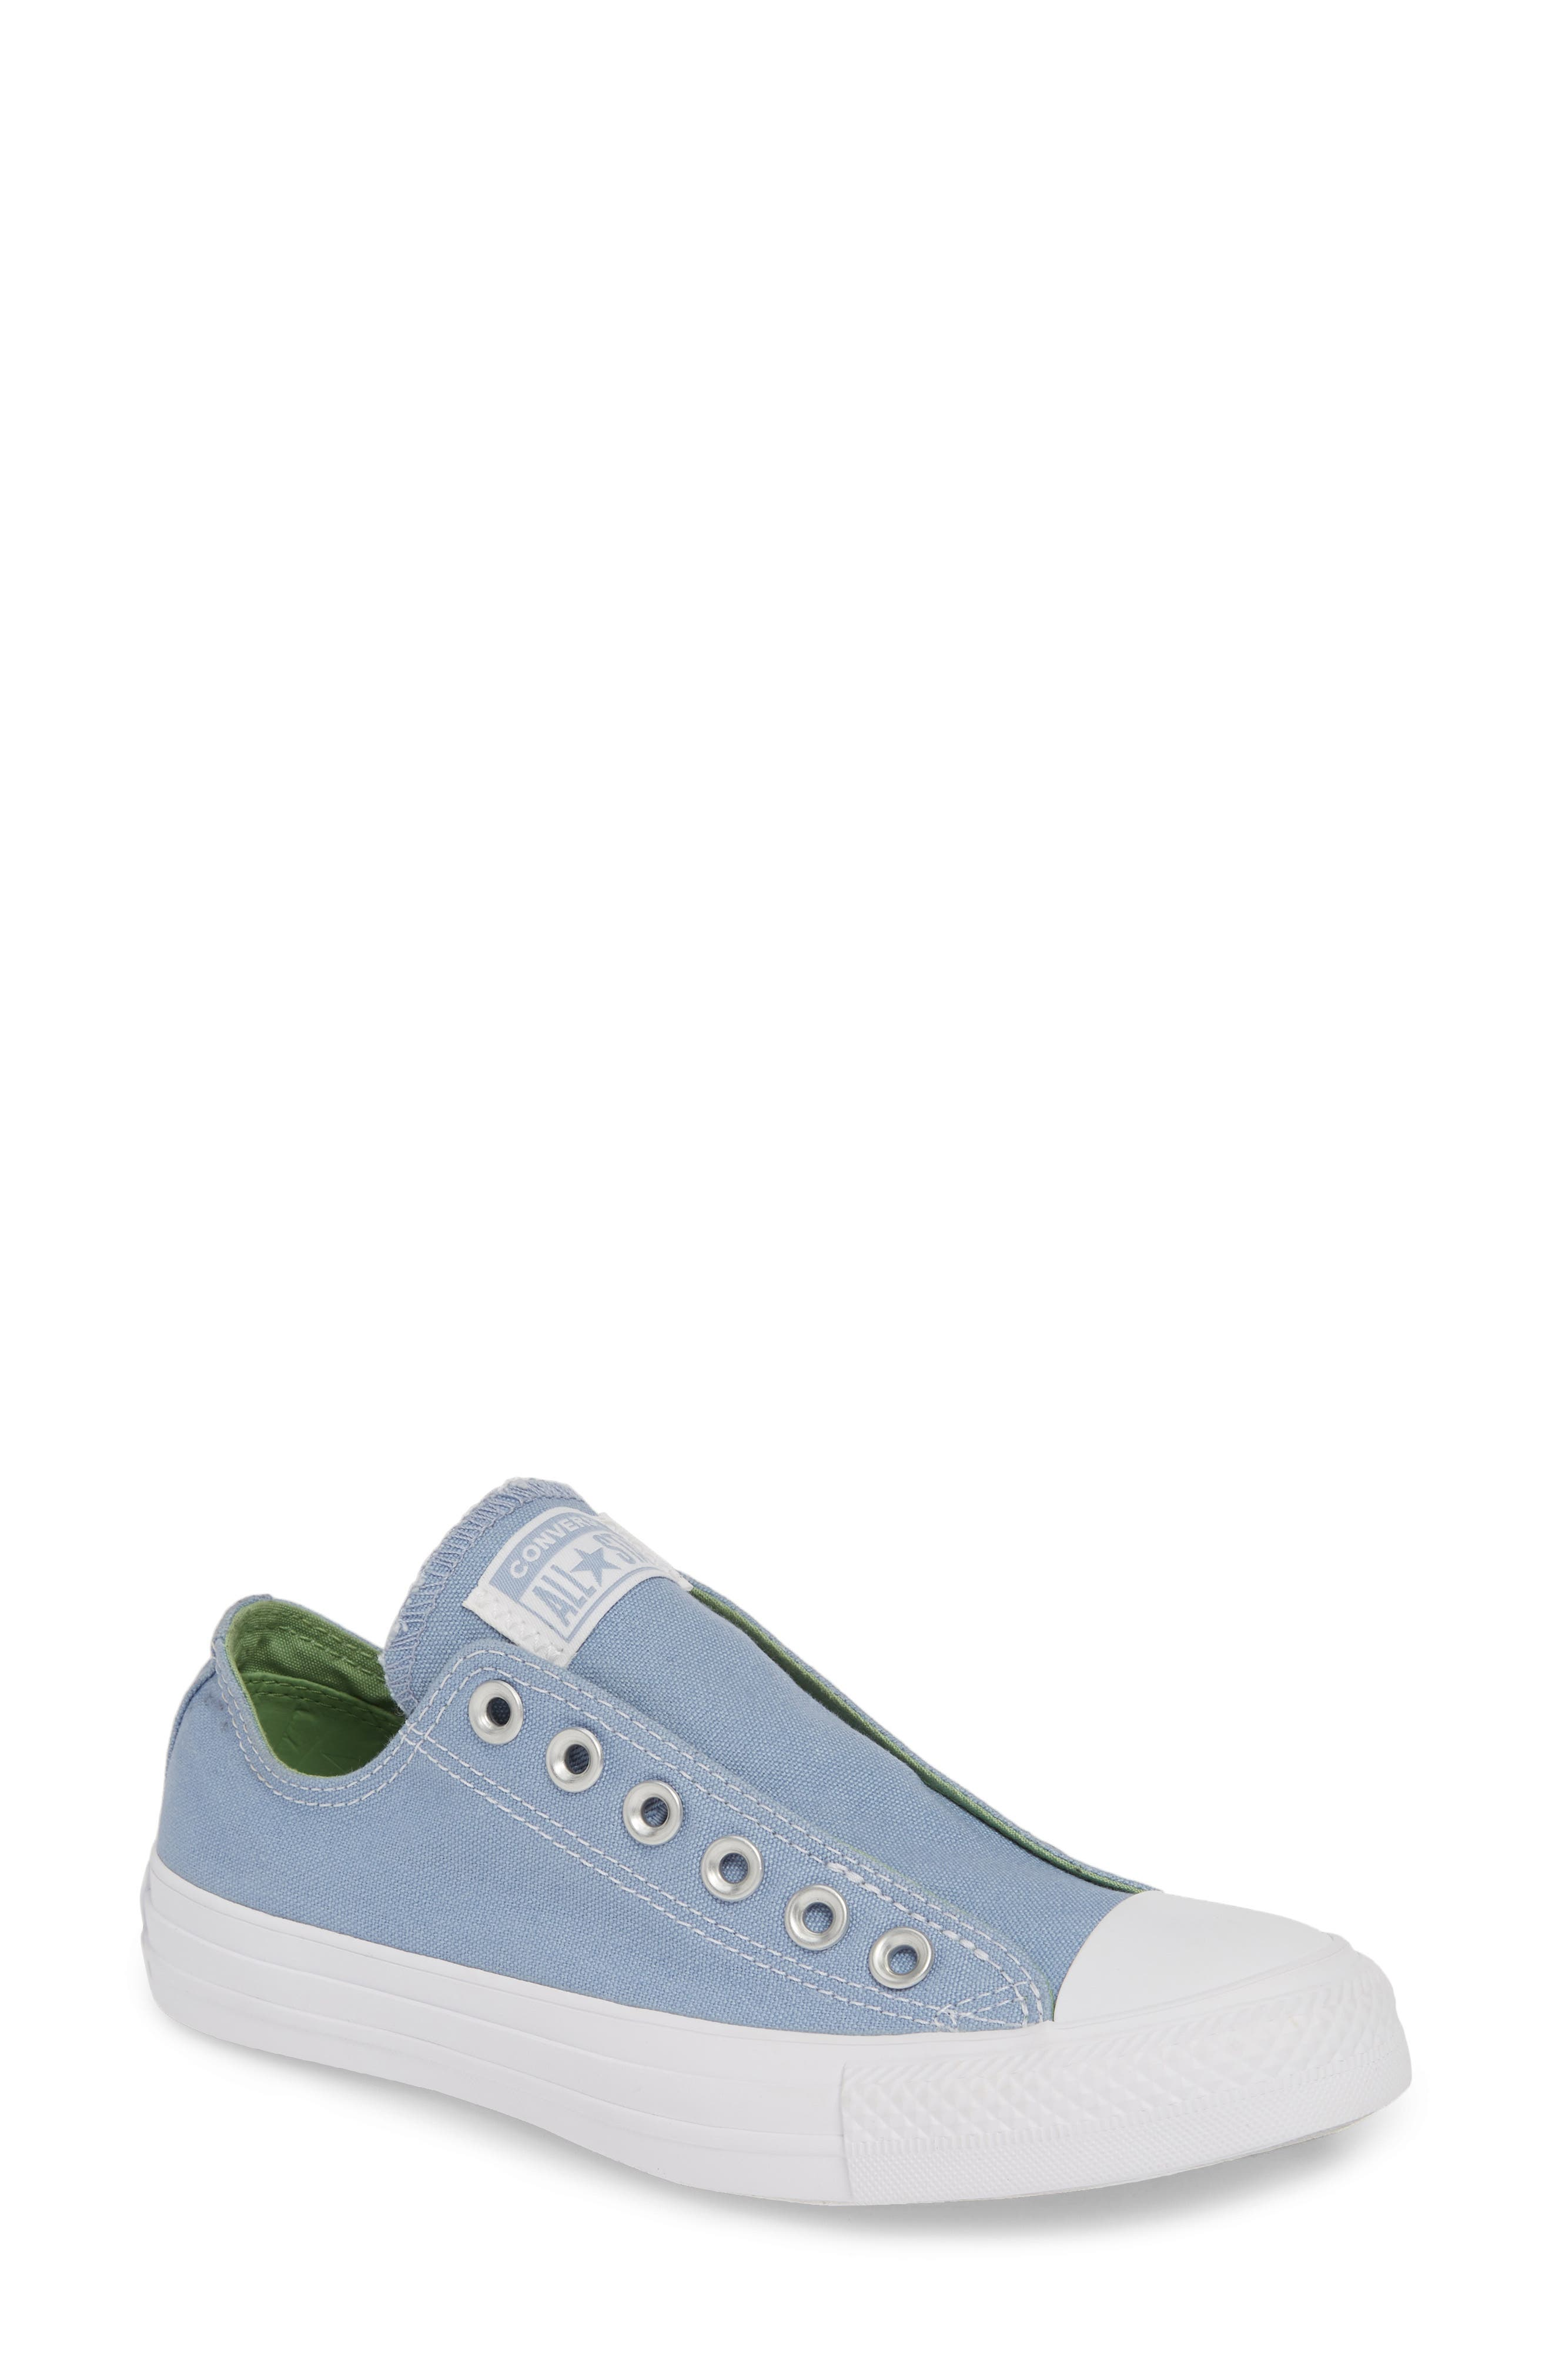 Converse Chuck Taylor All Star Laceless Low Top Sneaker- Blue